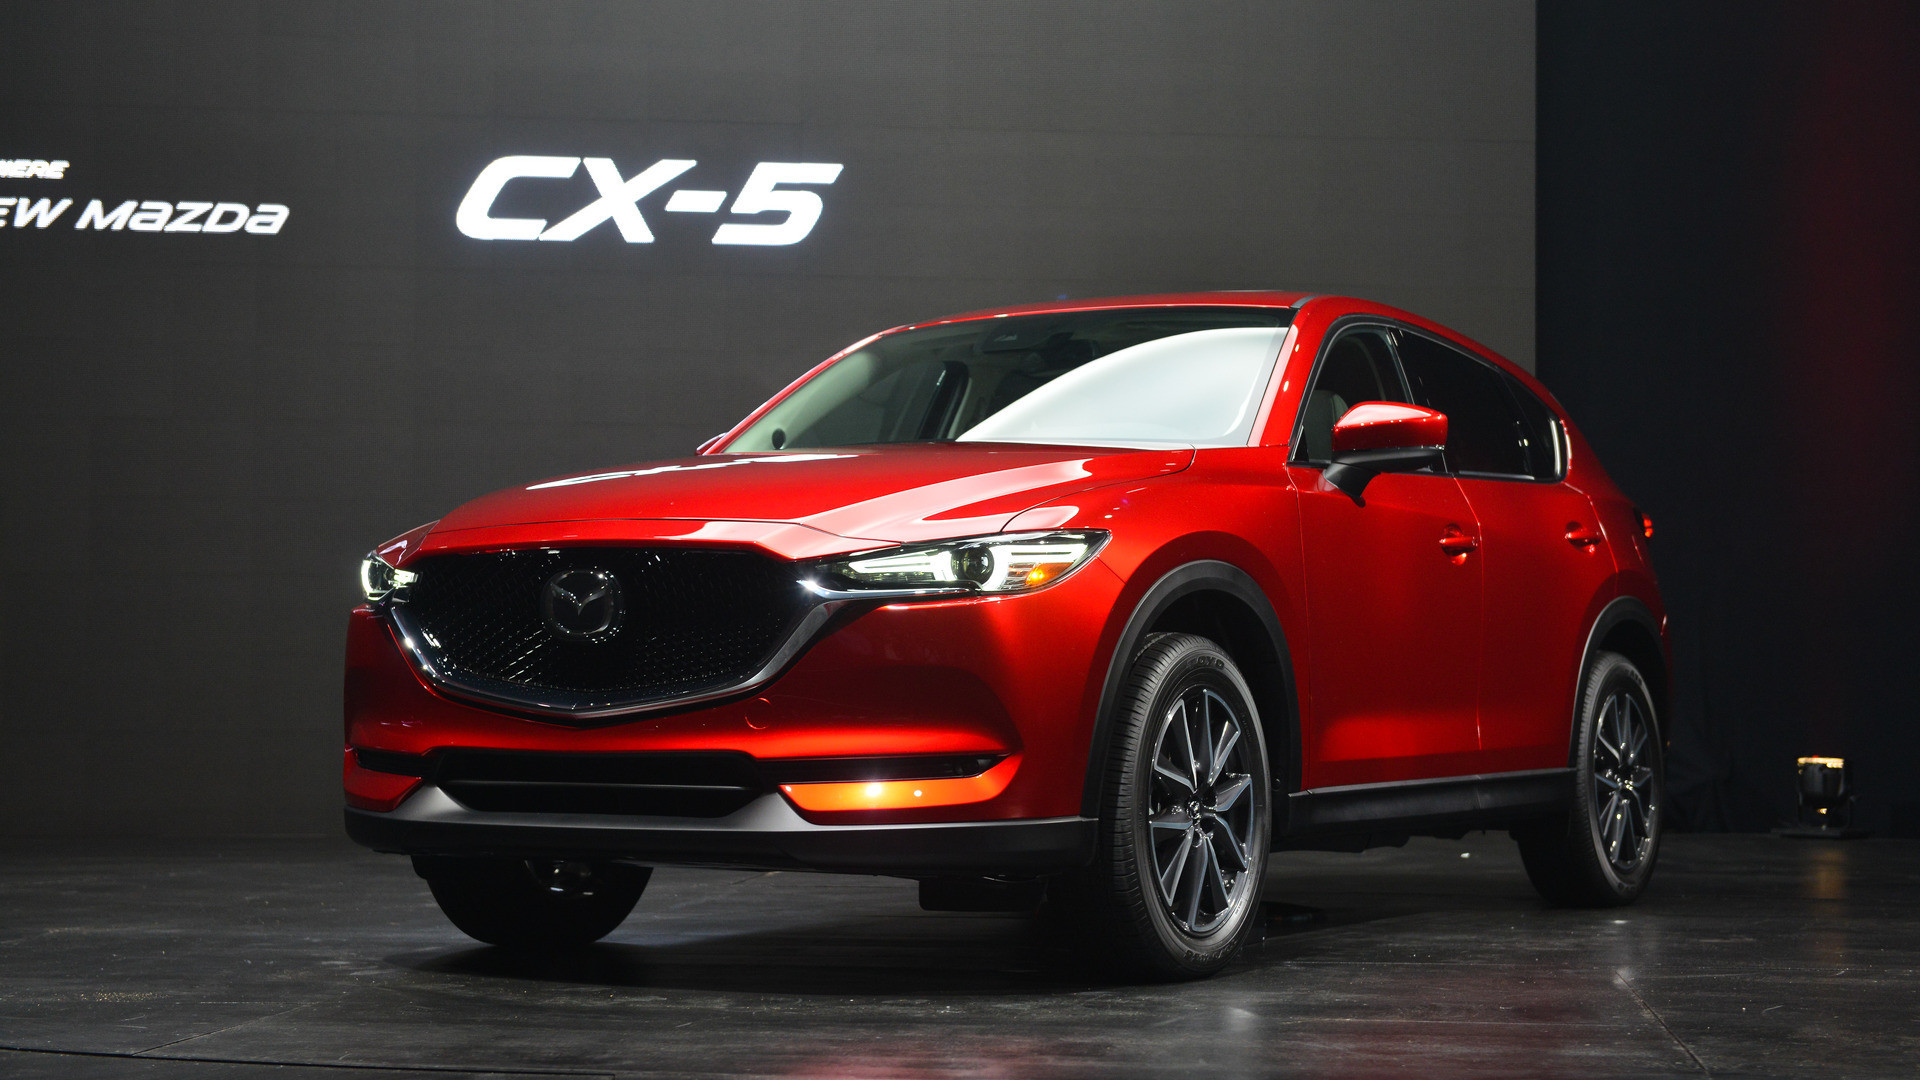 2020 Mazda Cx 5 Luxury 2018 Mazda Cx 5 2017 Mazda 5 Unique Mazda Cx